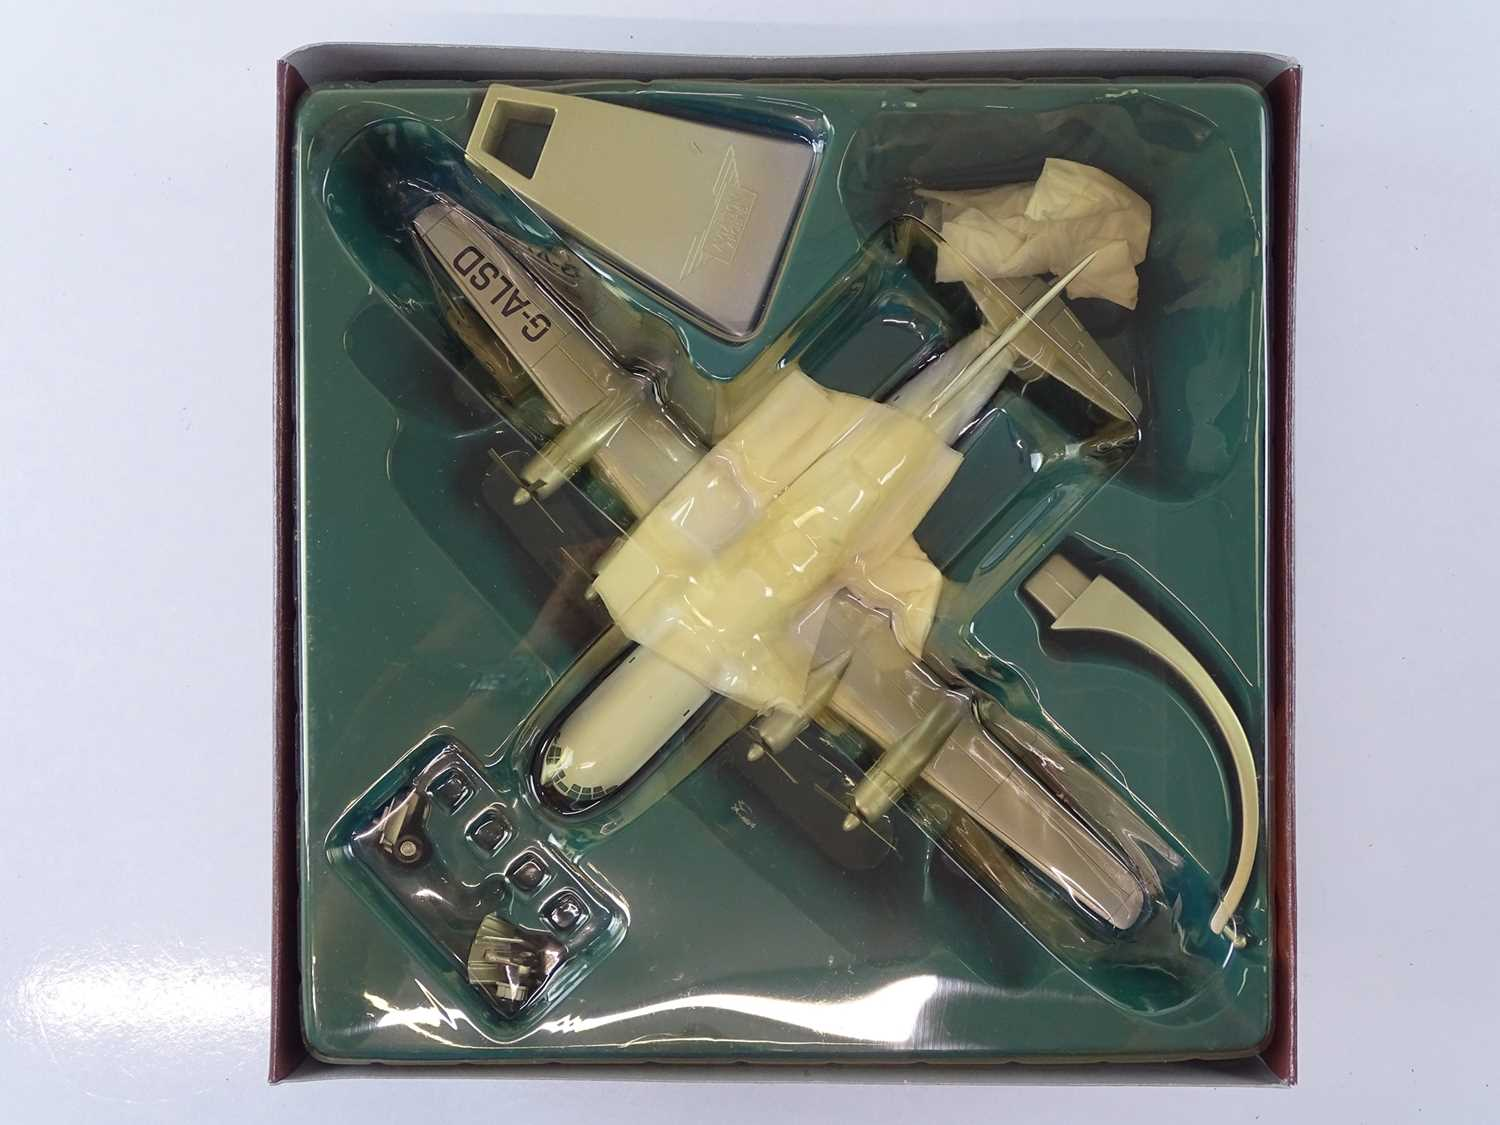 A group of CORGI AVIATION ARCHIVE 1:144 scale Classic Propliners Series Propellor Aircraft - VG in G - Image 5 of 10